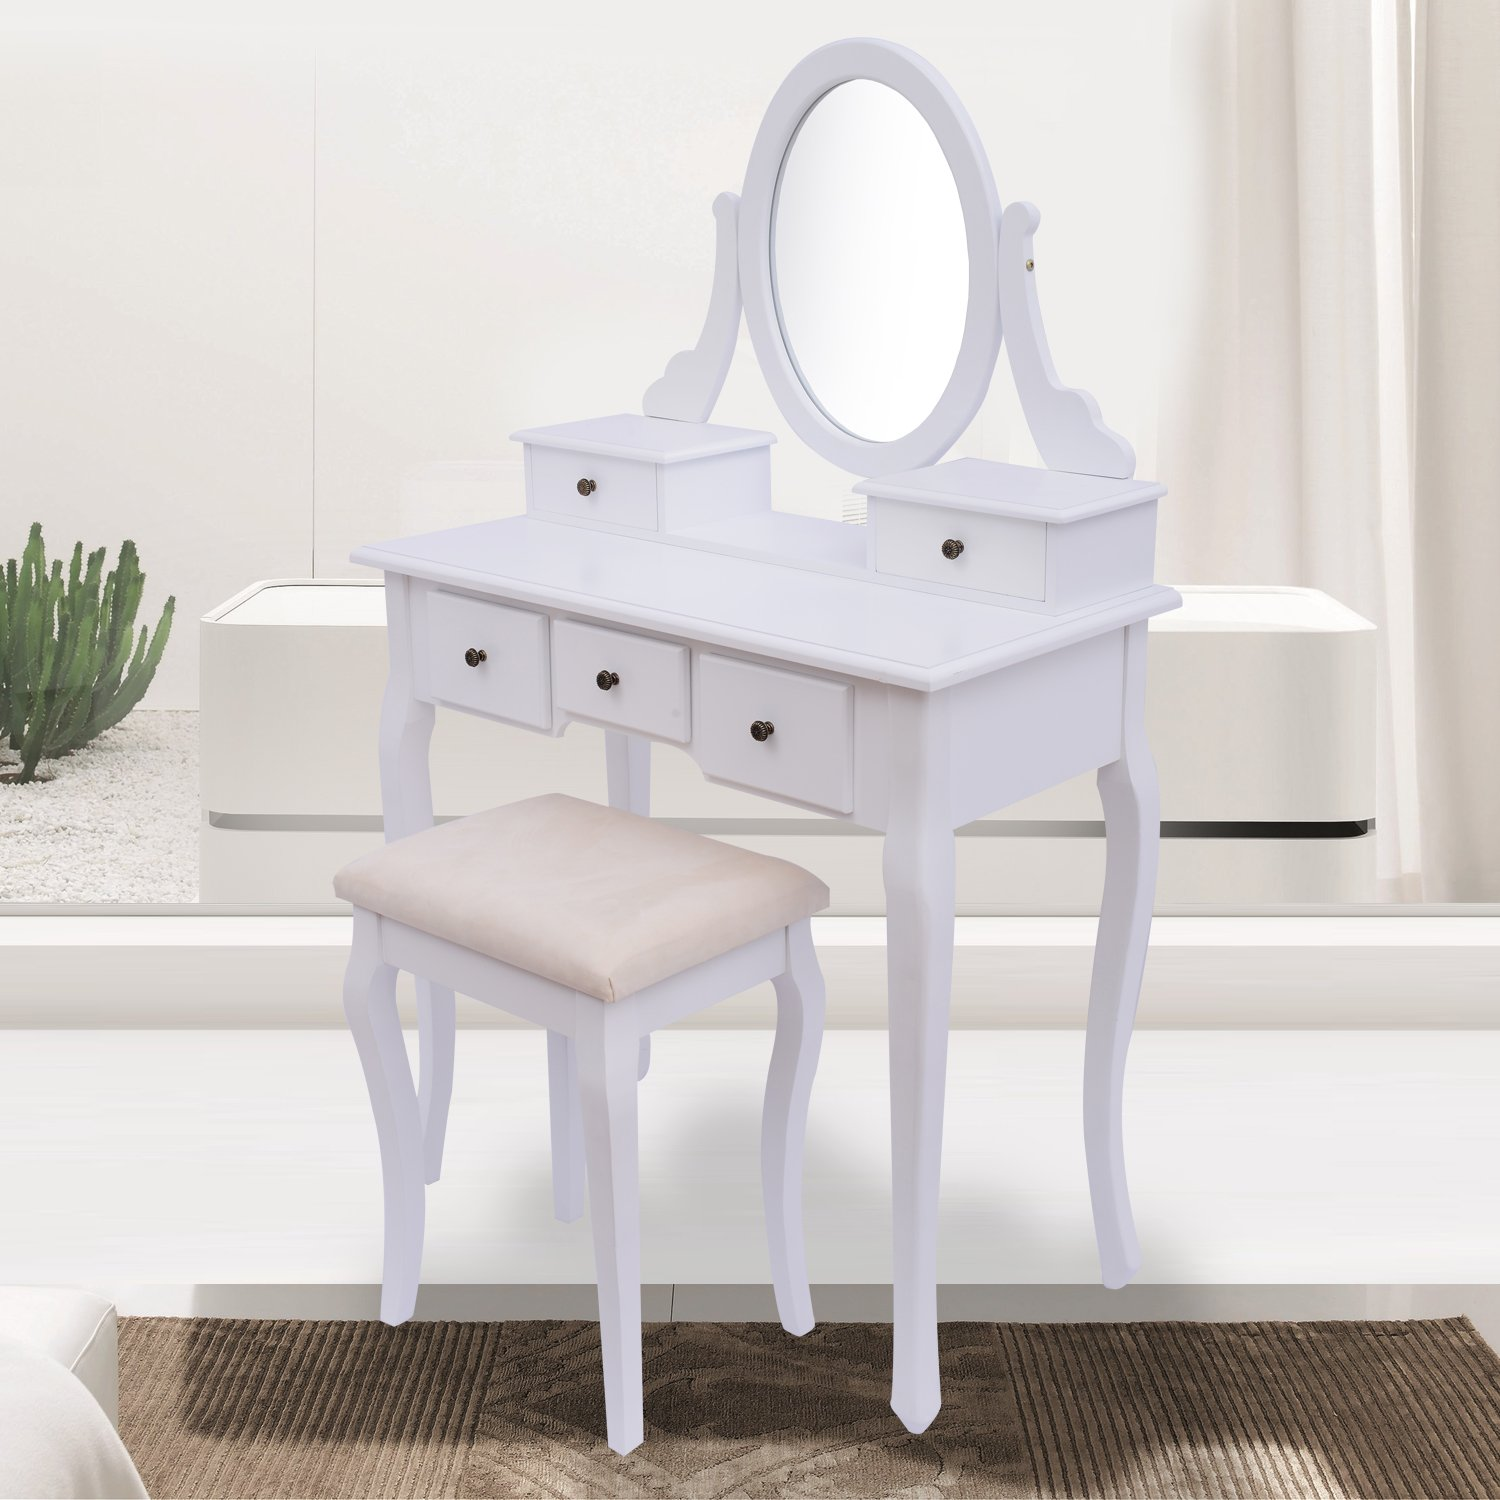 CLEARANCE HOMCOM Antique Style Shabby Chic Dressing Table With Vanity  Mirror U0026 Stool   White: Amazon.co.uk: Garden U0026 Outdoors